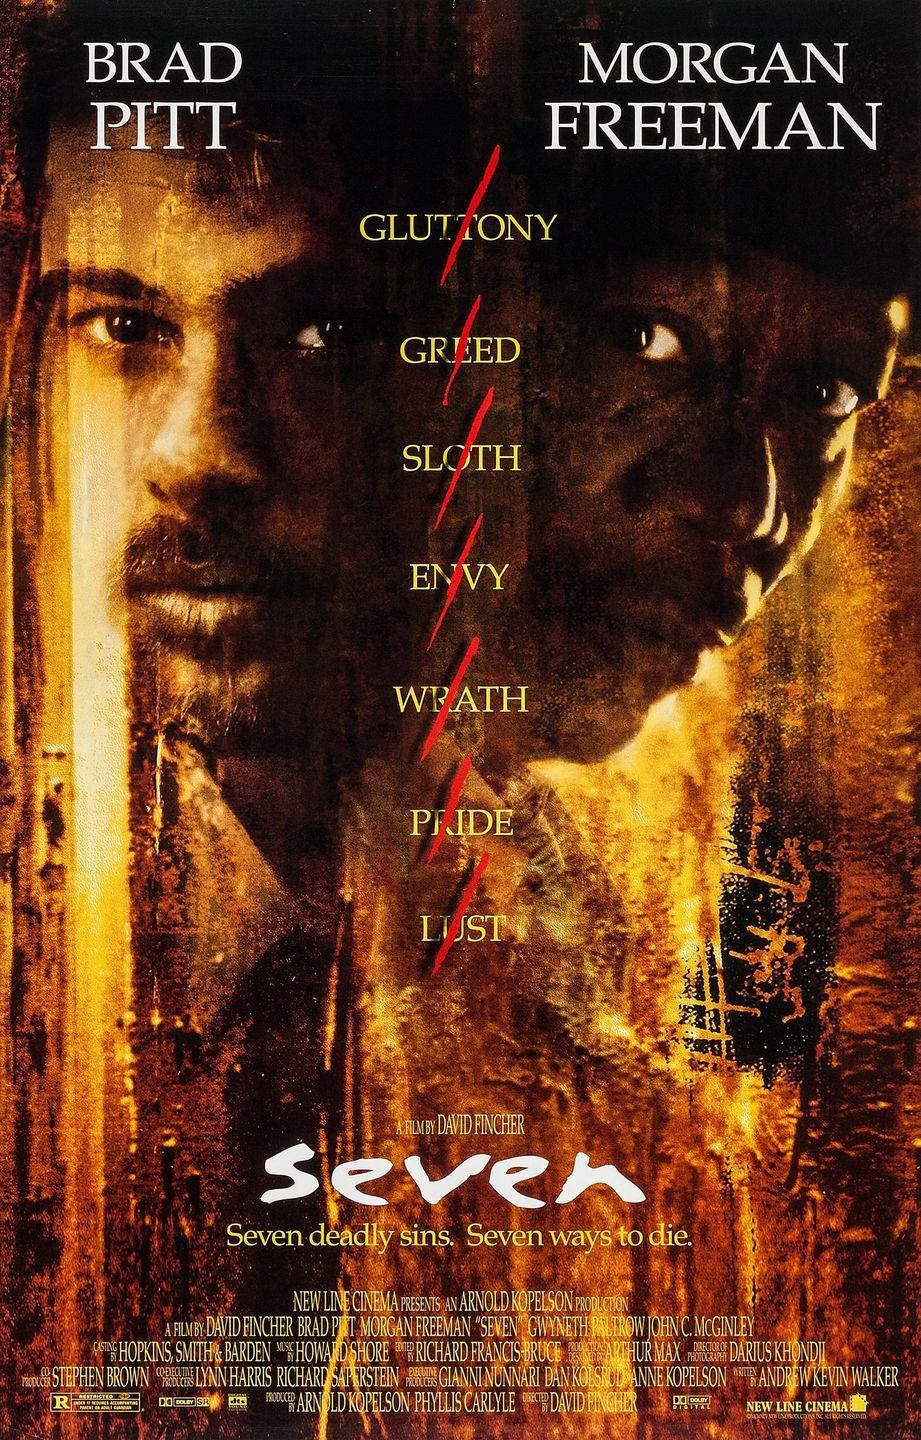 "<p><em>Seven</em> is another riveting psychological crime thriller about a serial killer, but in this one, the killer bases his murders on the Seven Deadly Sins. Two detectives (Brad Pitt, Morgan Freeman) must team up to catch him before he strikes again. </p><p><a class=""link rapid-noclick-resp"" href=""https://www.amazon.com/Seven-Brad-Pitt/dp/B00464AVXW?tag=syn-yahoo-20&ascsubtag=%5Bartid%7C10055.g.34396232%5Bsrc%7Cyahoo-us"" rel=""nofollow noopener"" target=""_blank"" data-ylk=""slk:WATCH ON AMAZON"">WATCH ON AMAZON</a> </p>"